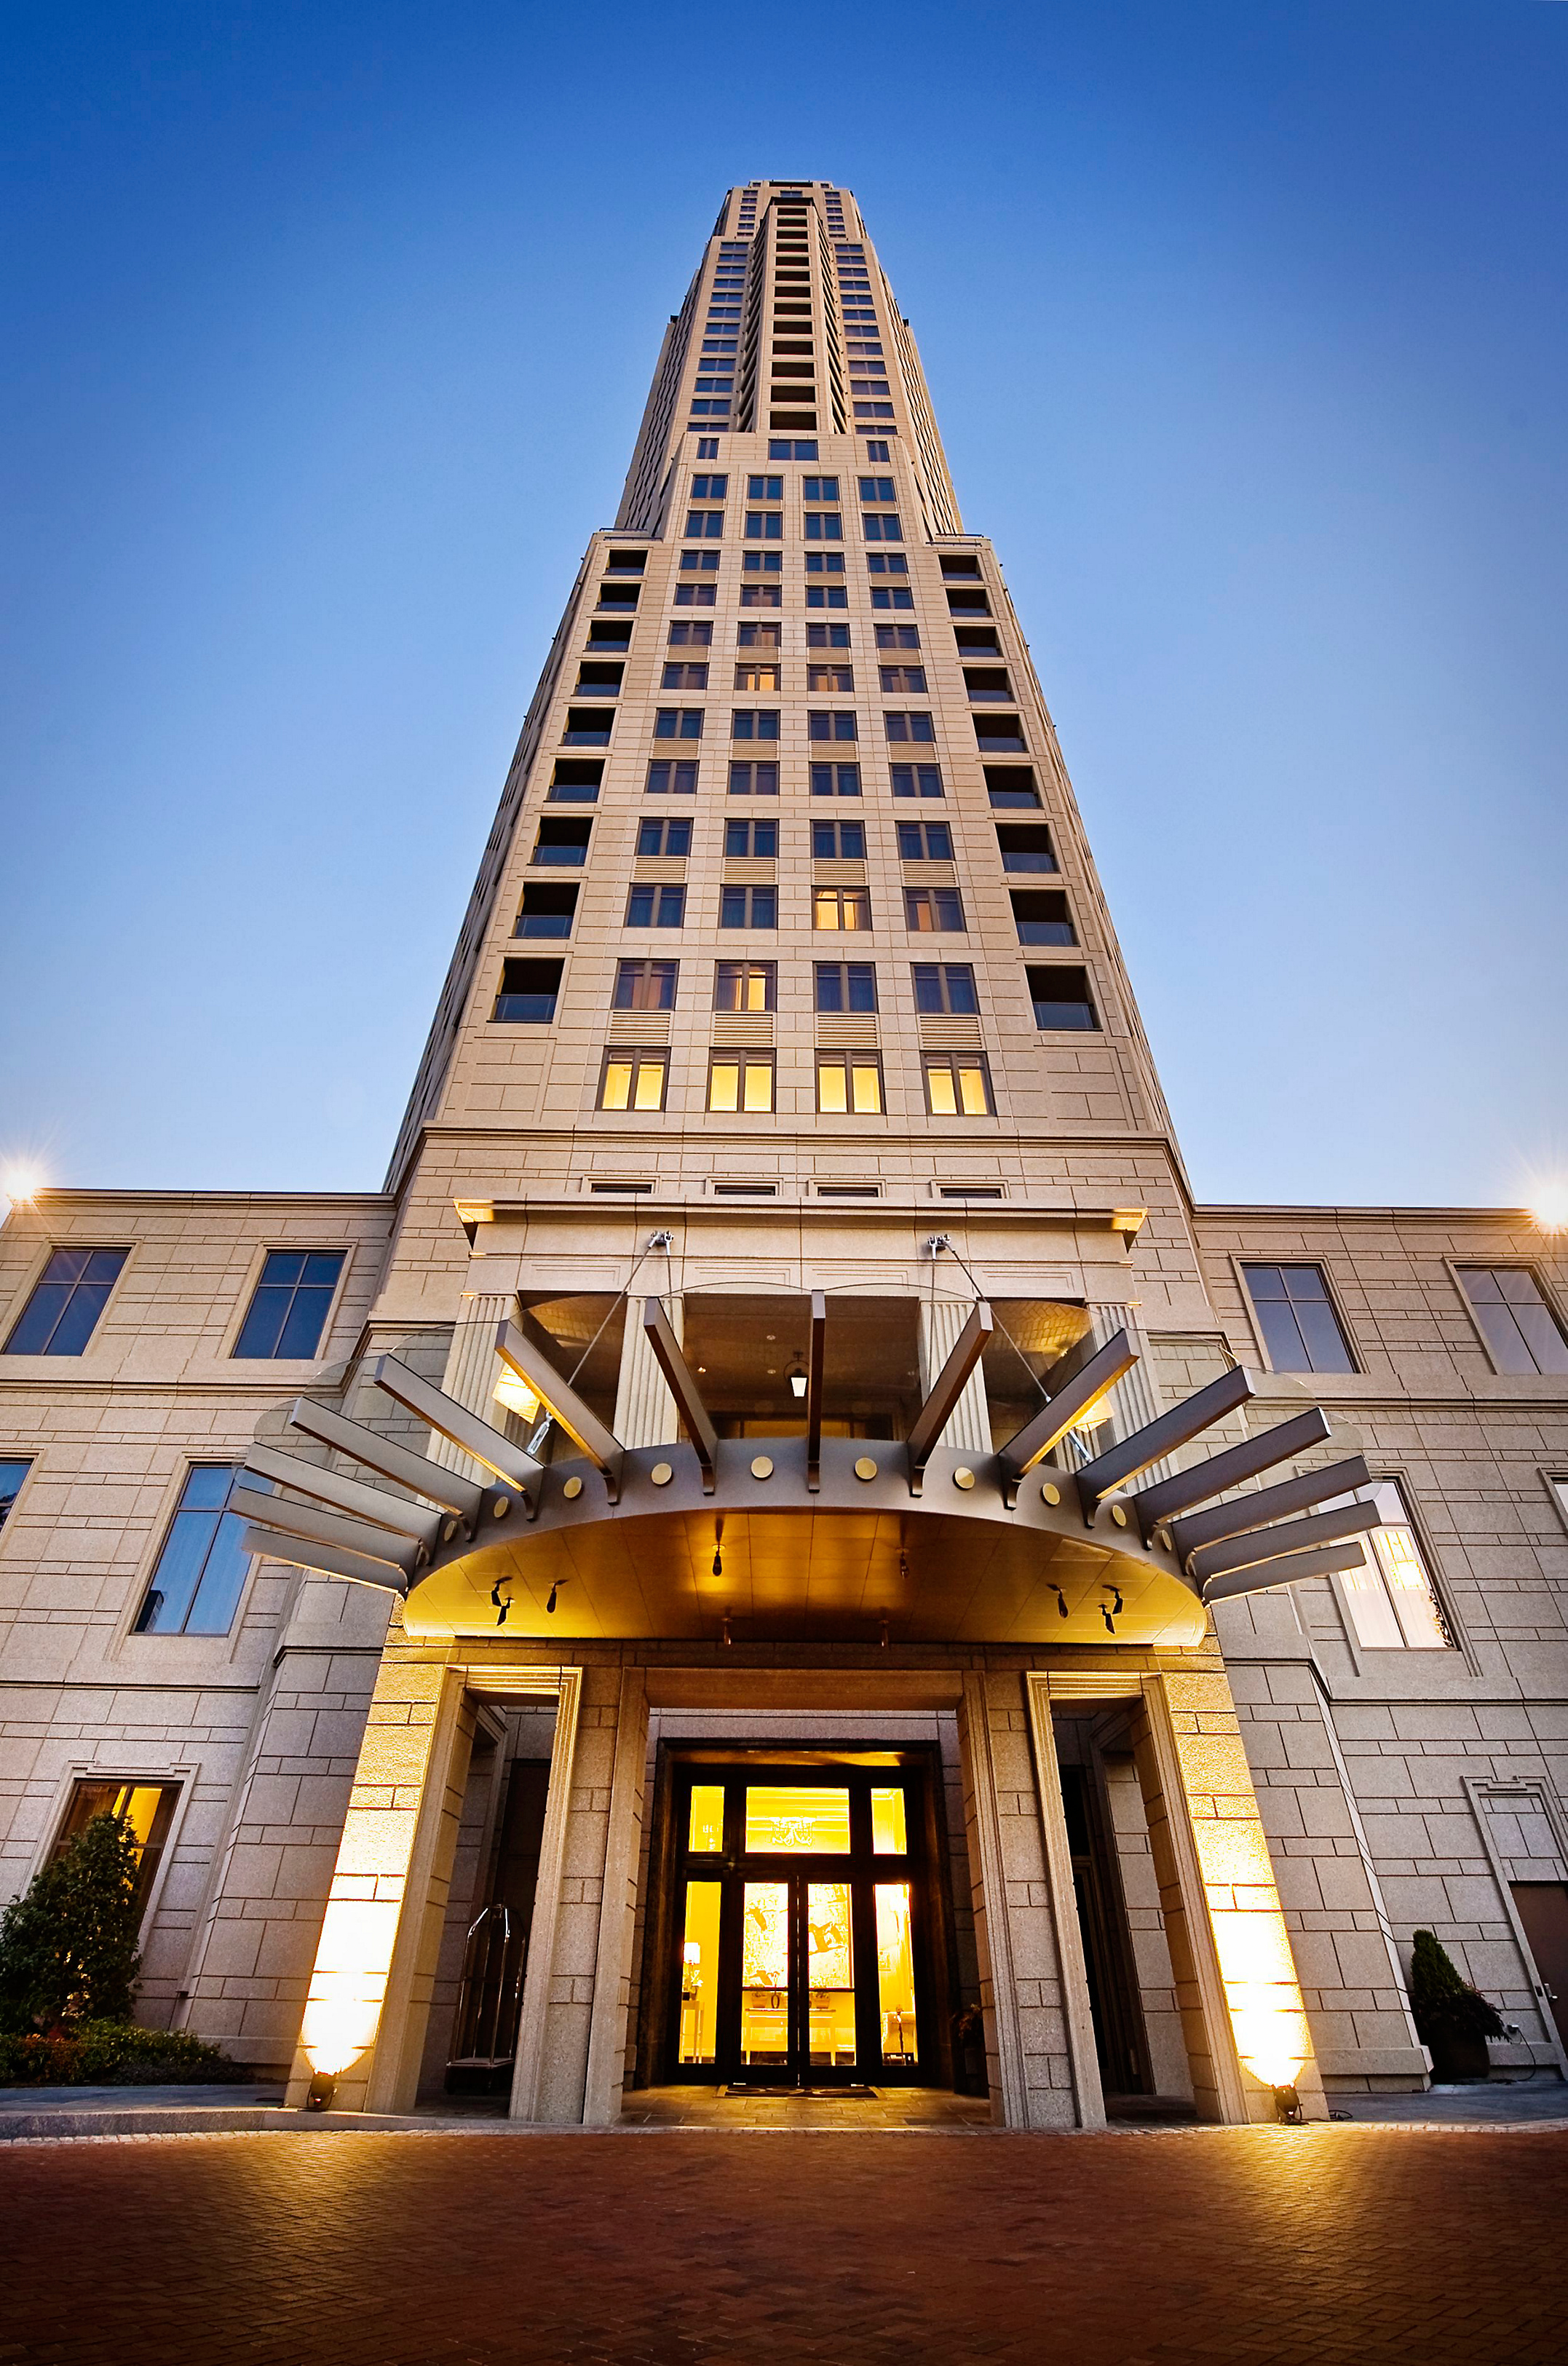 HGTV has chosen the vibrant city of Atlanta as home of the HGTV(R) Urban Oasis 2014. (PHOTO: The Residences at Mandarin Oriental, Atlanta)